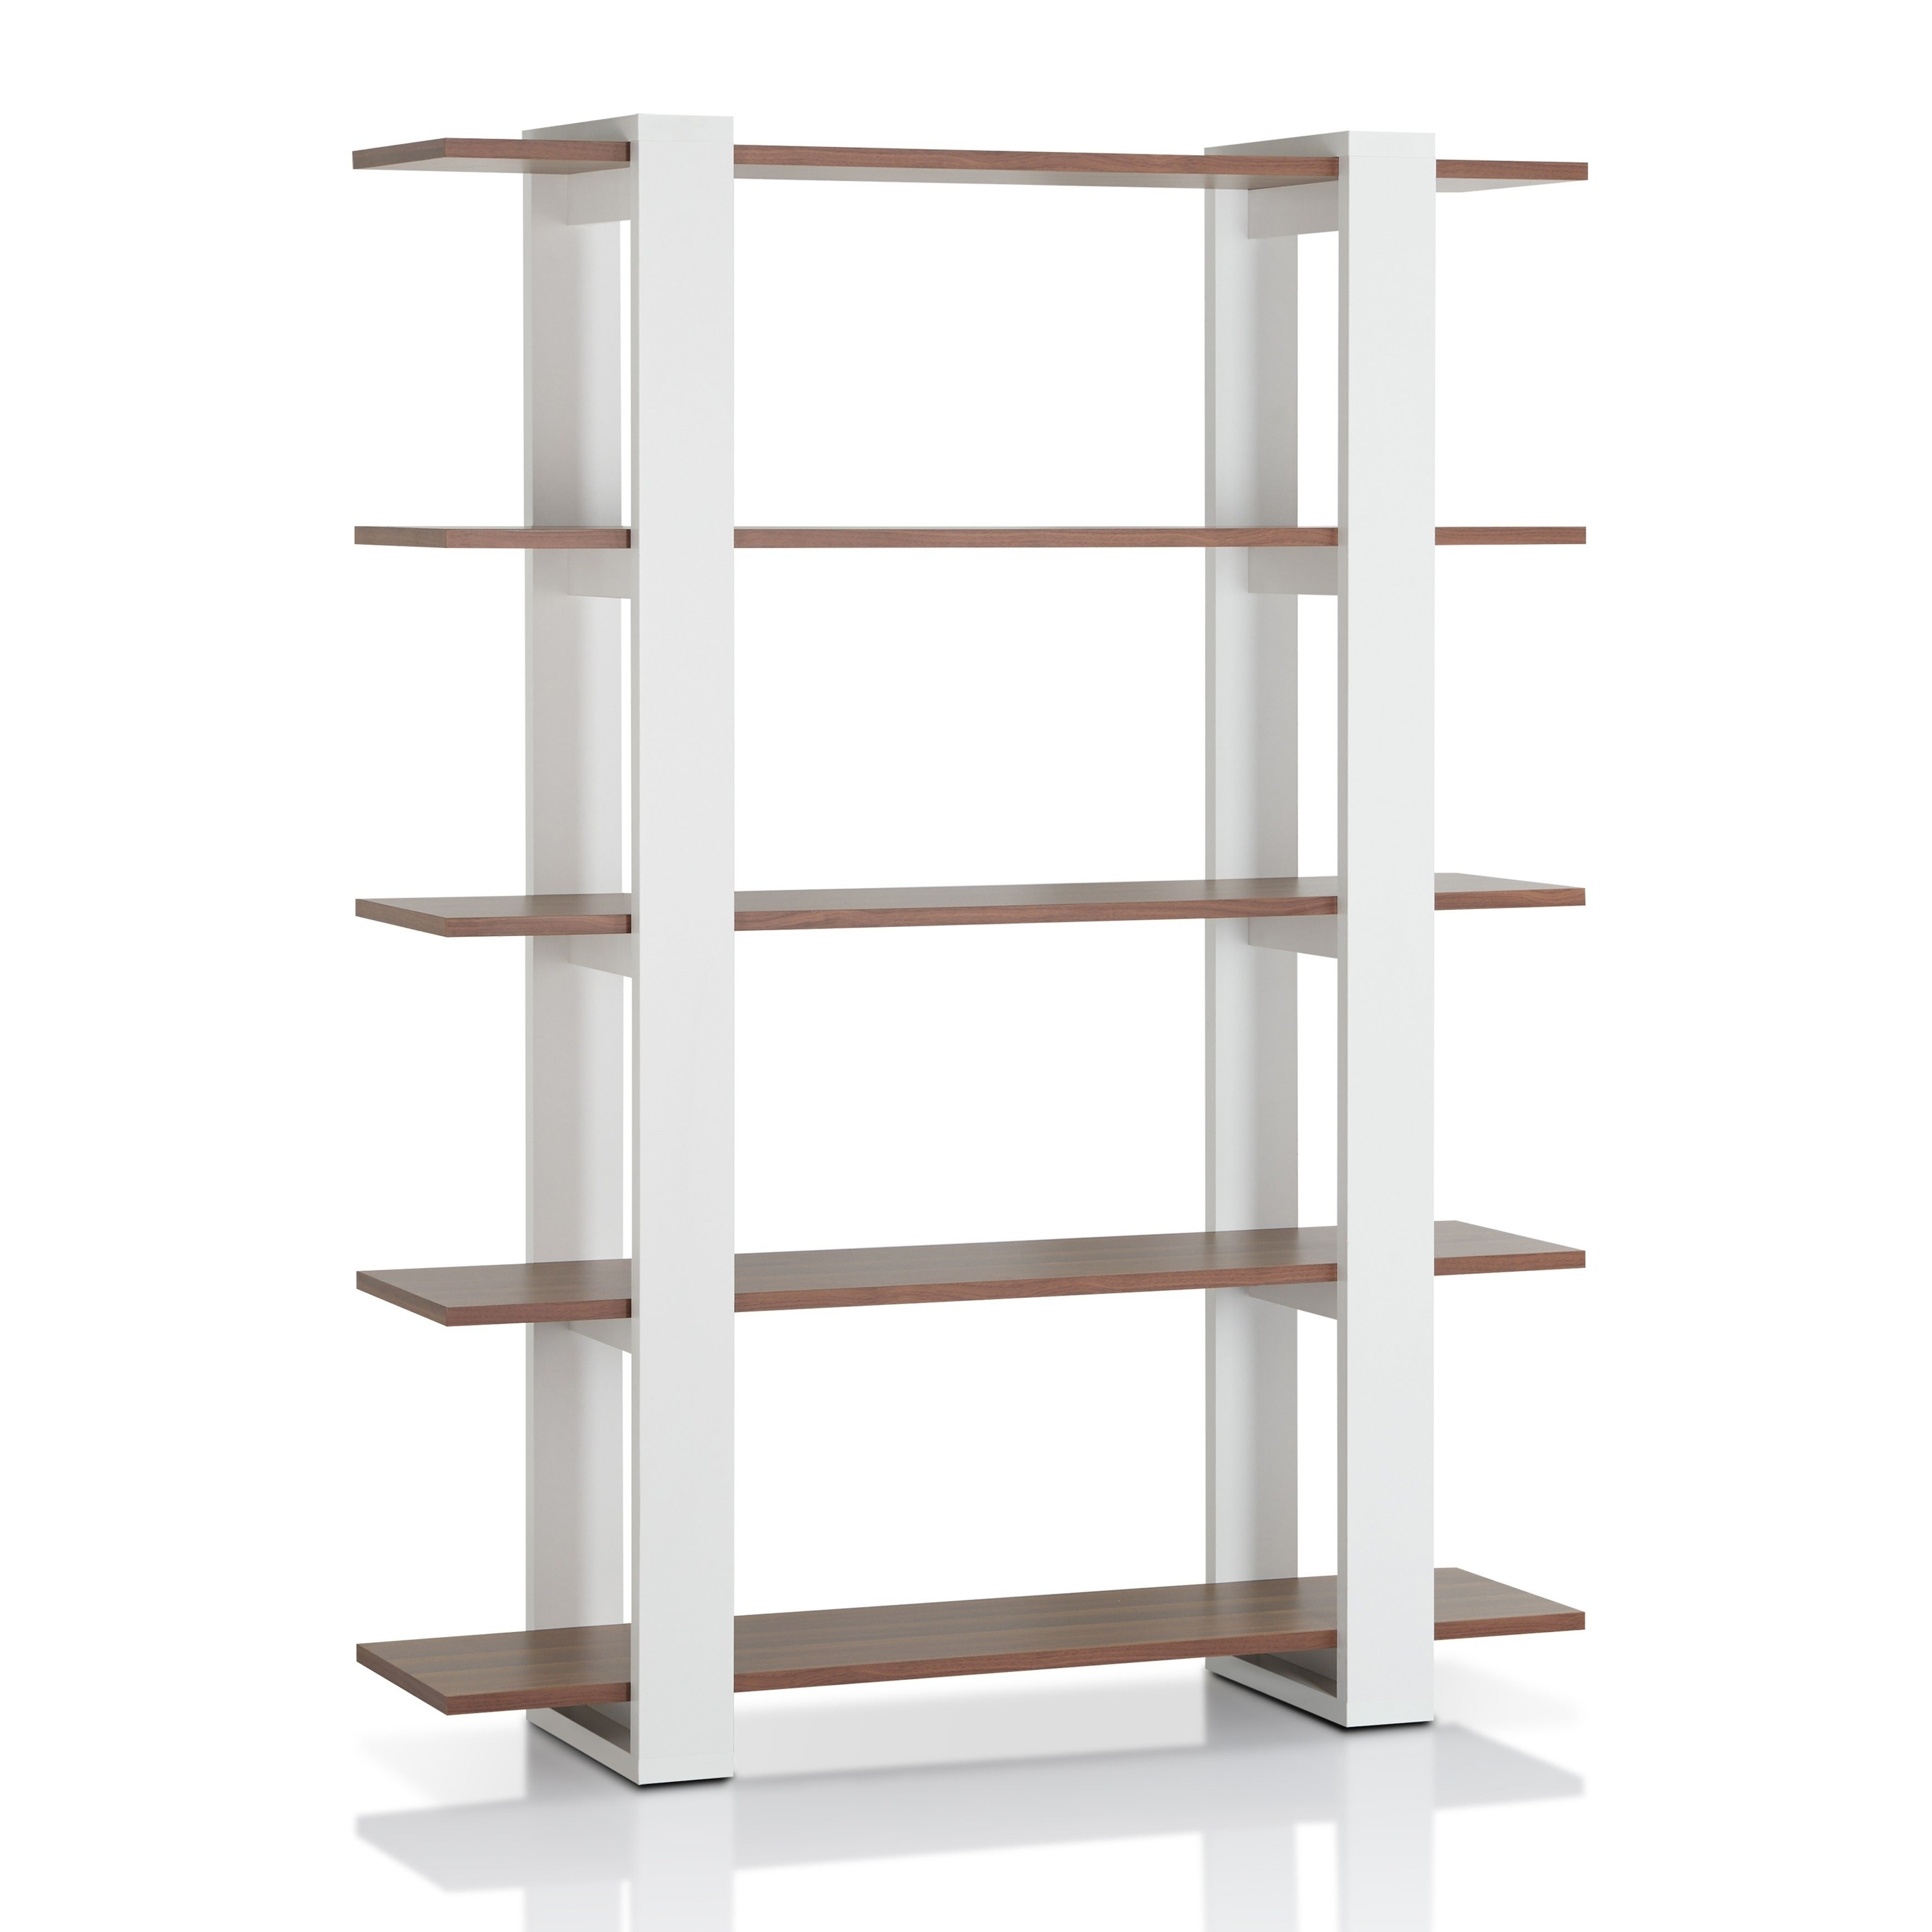 inch furinno shelf design lovely tier bookcase wh book open wide awesome portable amazon bookcases of white home